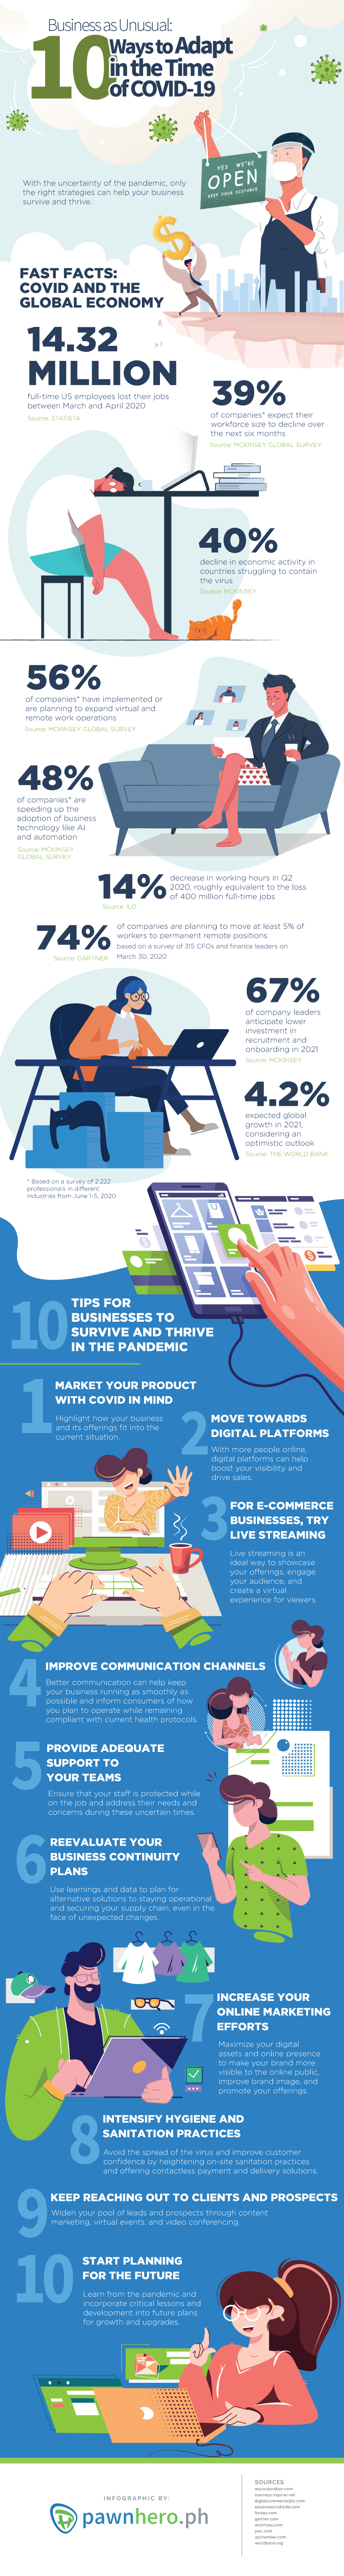 [Infographic] 10 Ways to Adapt in the Time of COVID-19